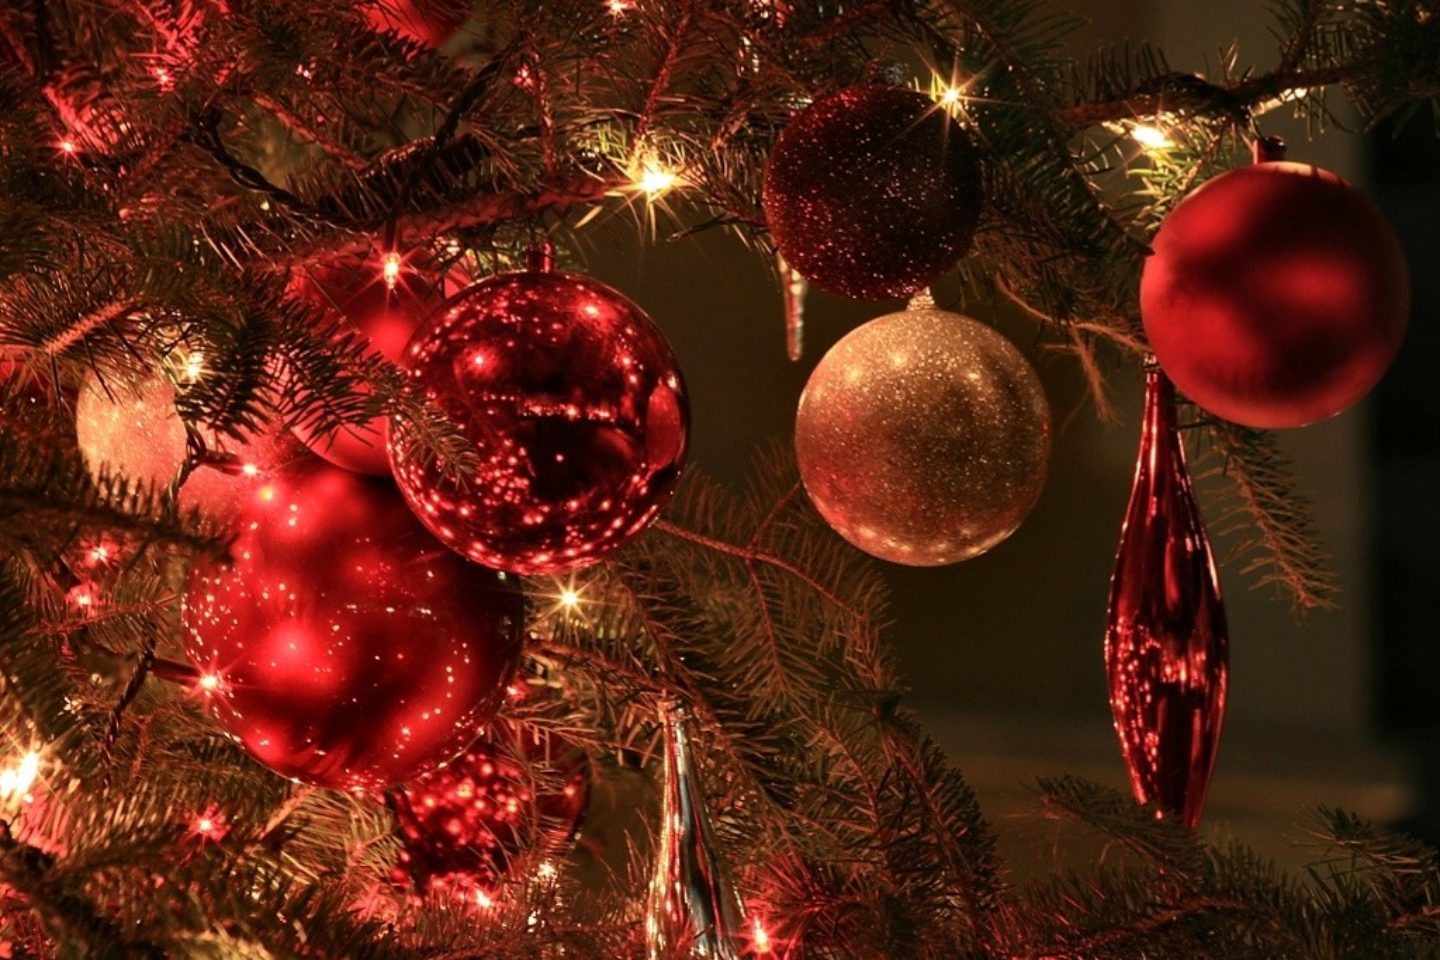 christmas tree ball wallpapers Luxury Picture Christmas Ornaments 40 Desktop Backgrounds